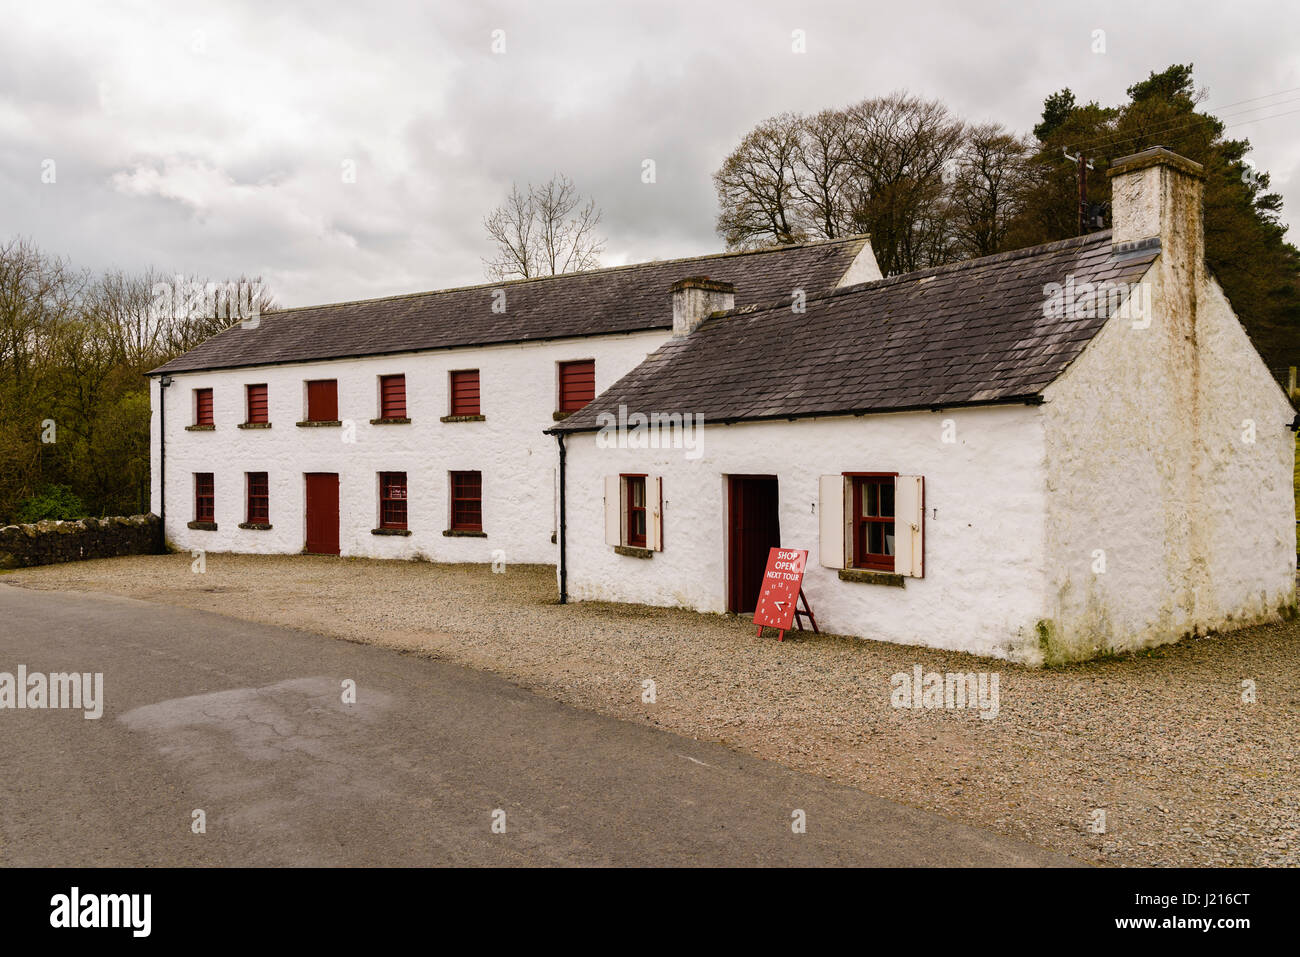 Wellbrook Beetling Mill, Cookstown, Northern Ireland - Stock Image